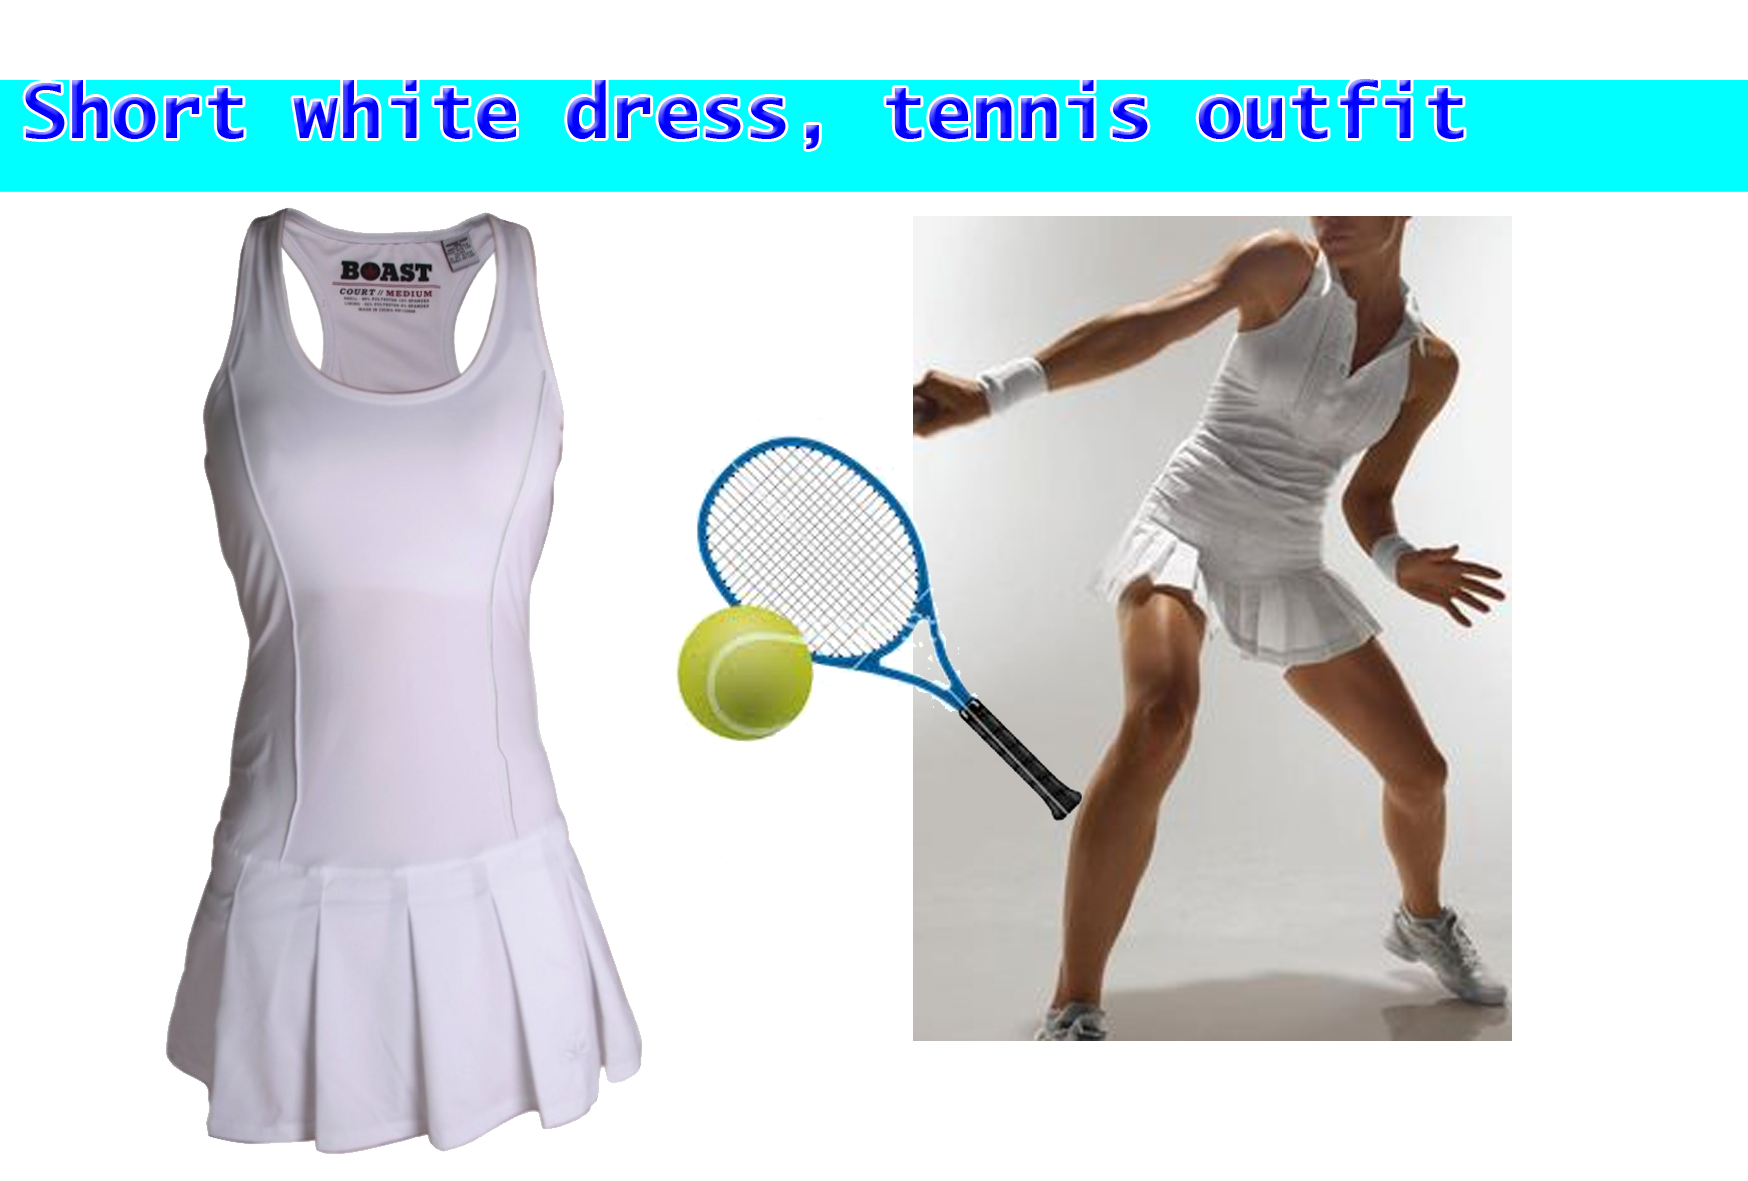 Short white dress, tennis outfit